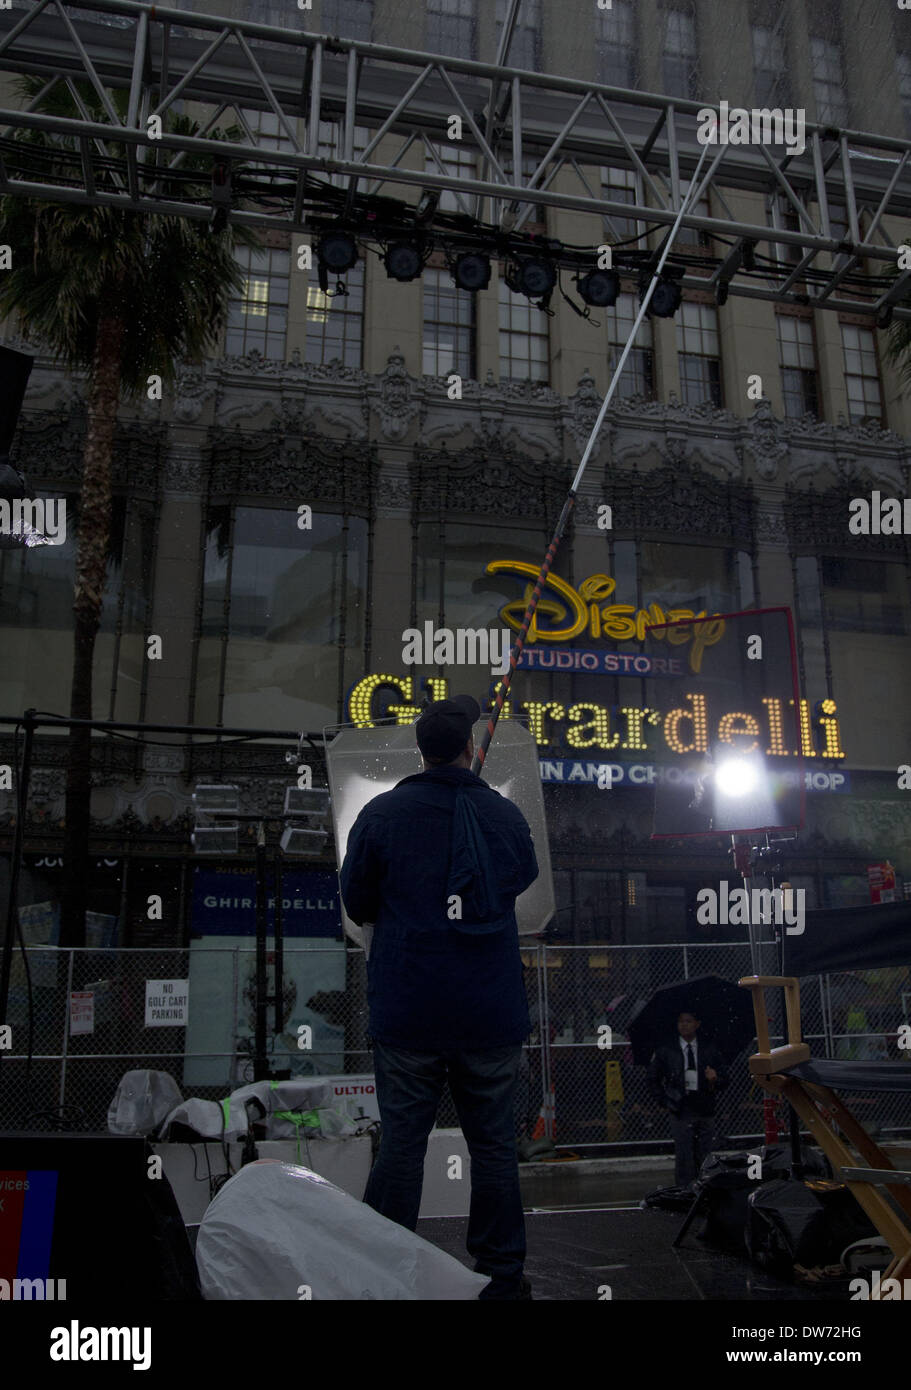 March 1, 2014 - Hollywood, CALIFORNIA, UNITED STATES OF AMERICA - On Saturday February 26, 2014, preparations are Stock Photo